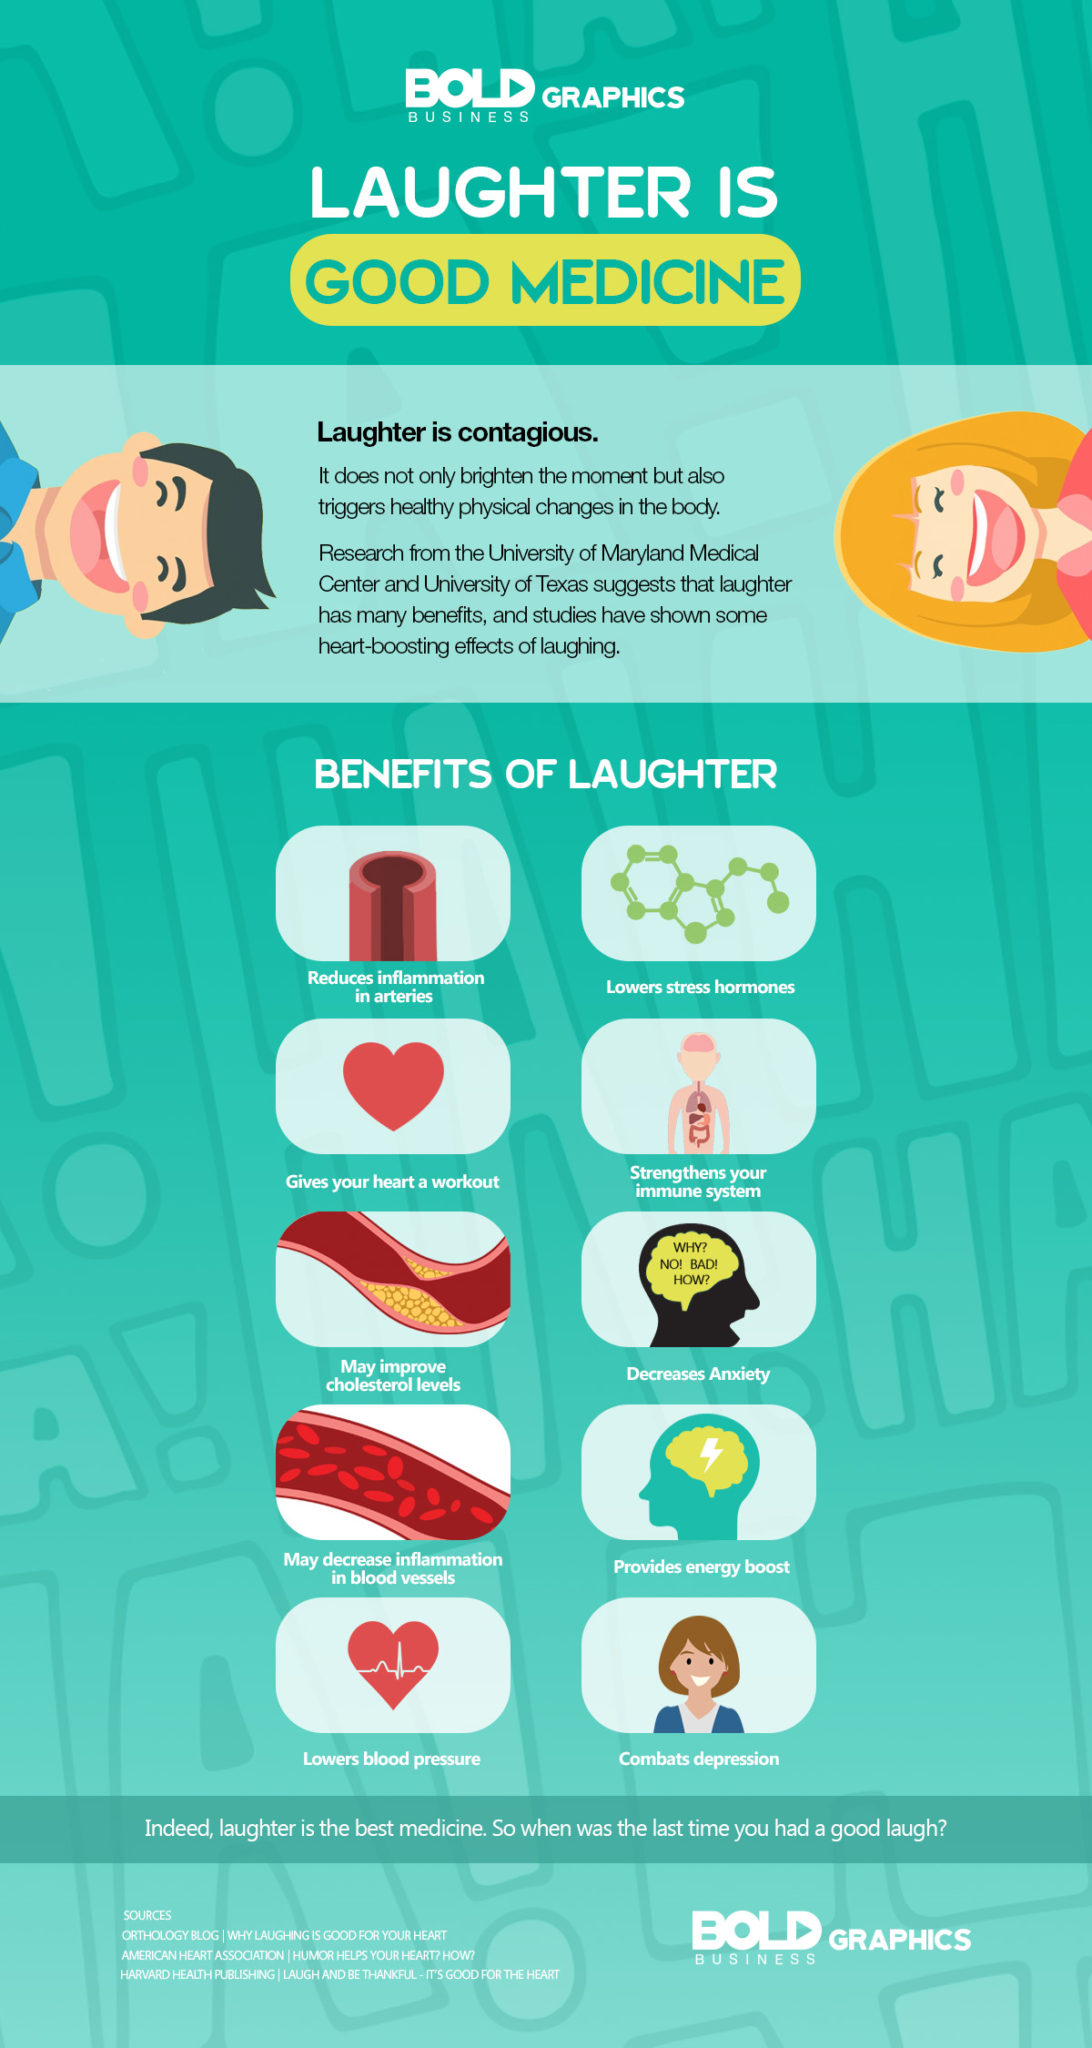 laughter is the best medicine,laughter definition,laughter is good medicine,benefits of laughter,laughter is a good medicine infographic